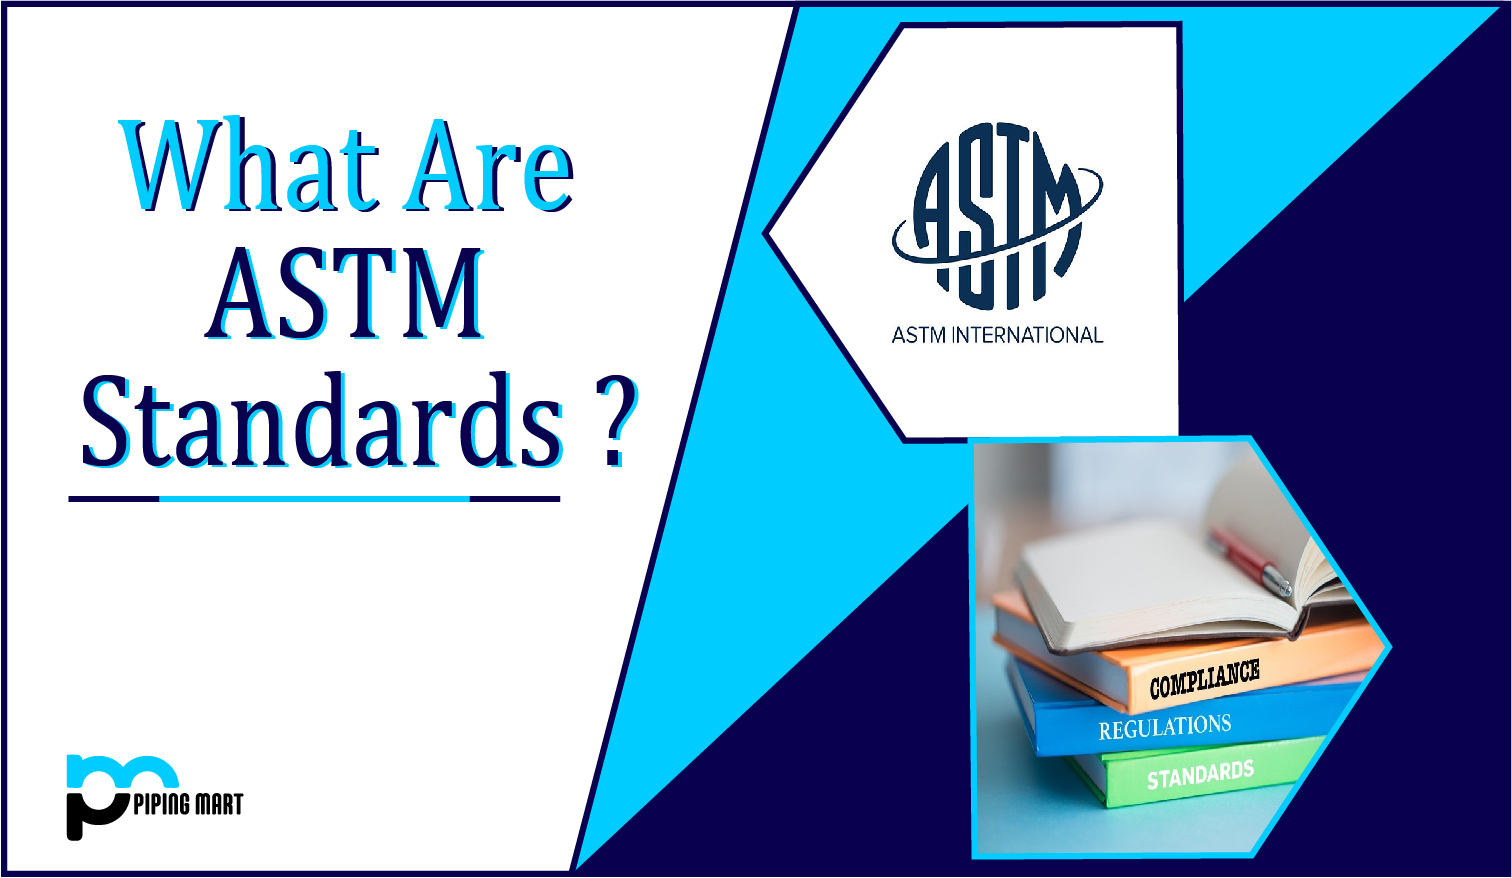 What Are ASTM Standards?